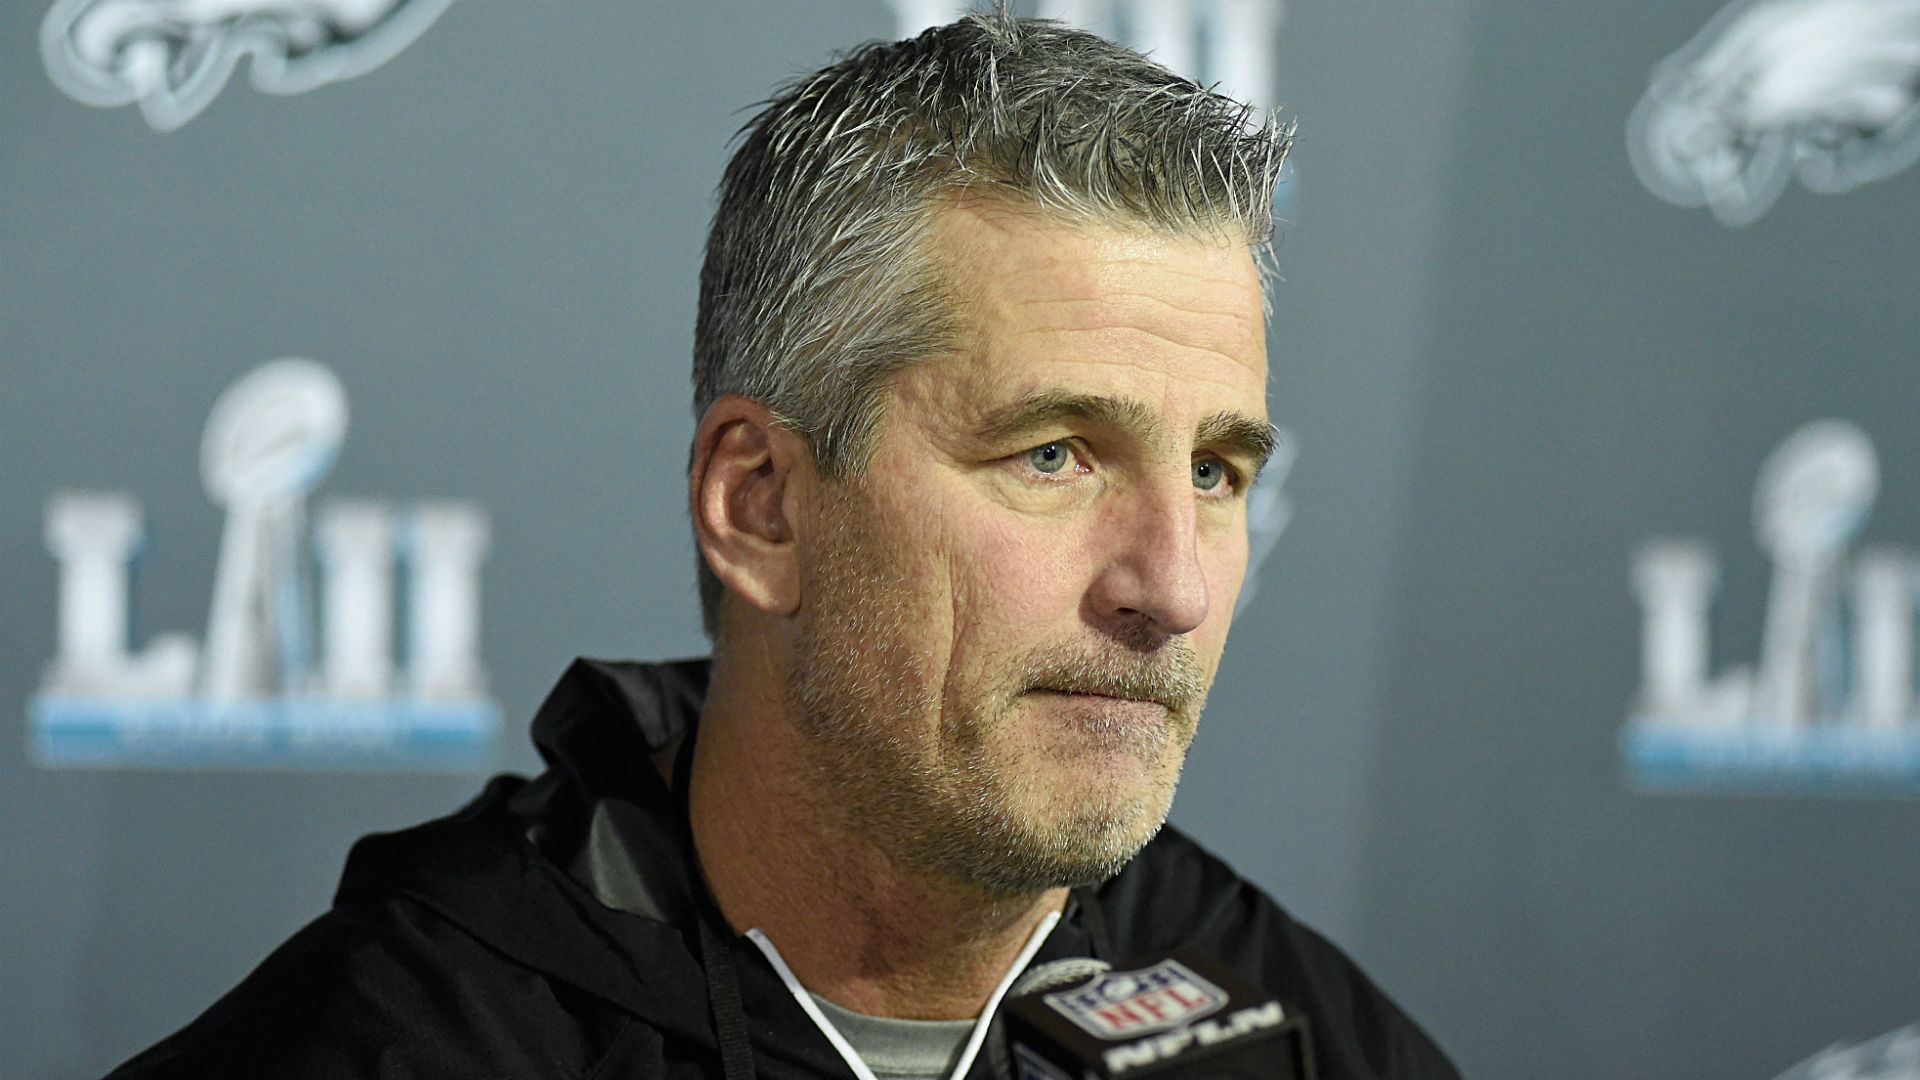 Frank Reich reportedly has five-year deal to become Colts coach